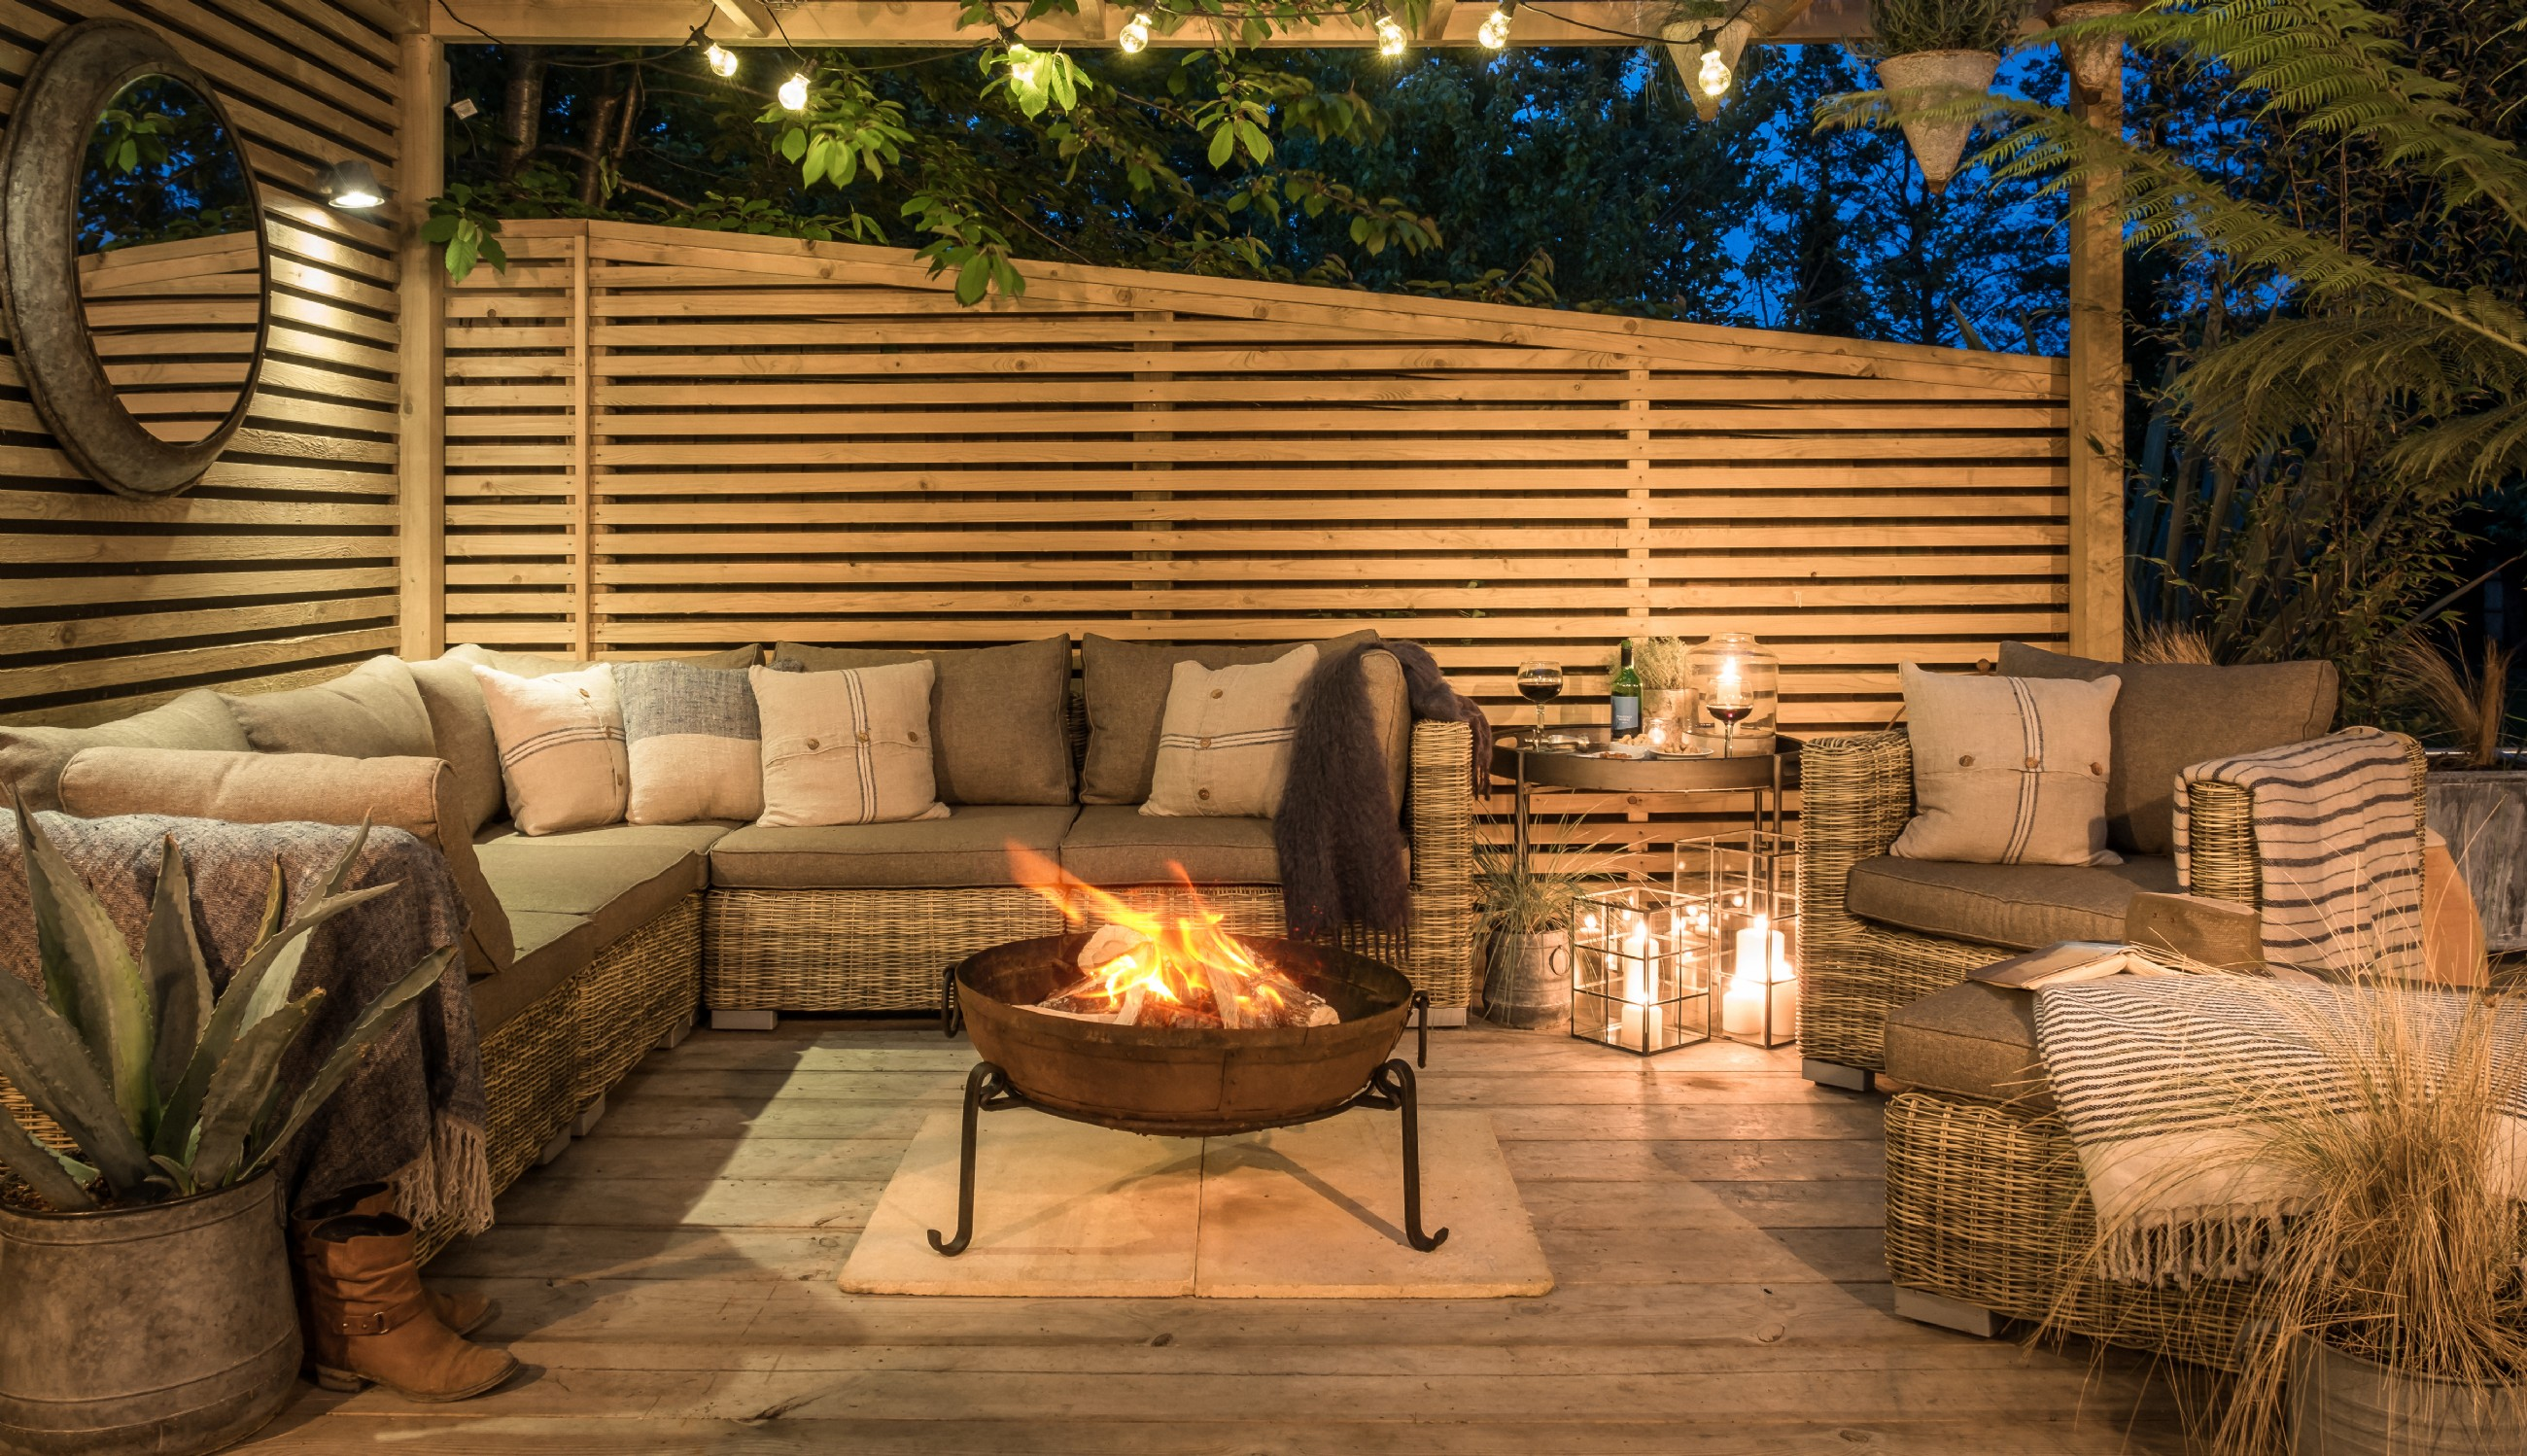 Luxury self-catering hot tub retreat in Lymington near the New Forest